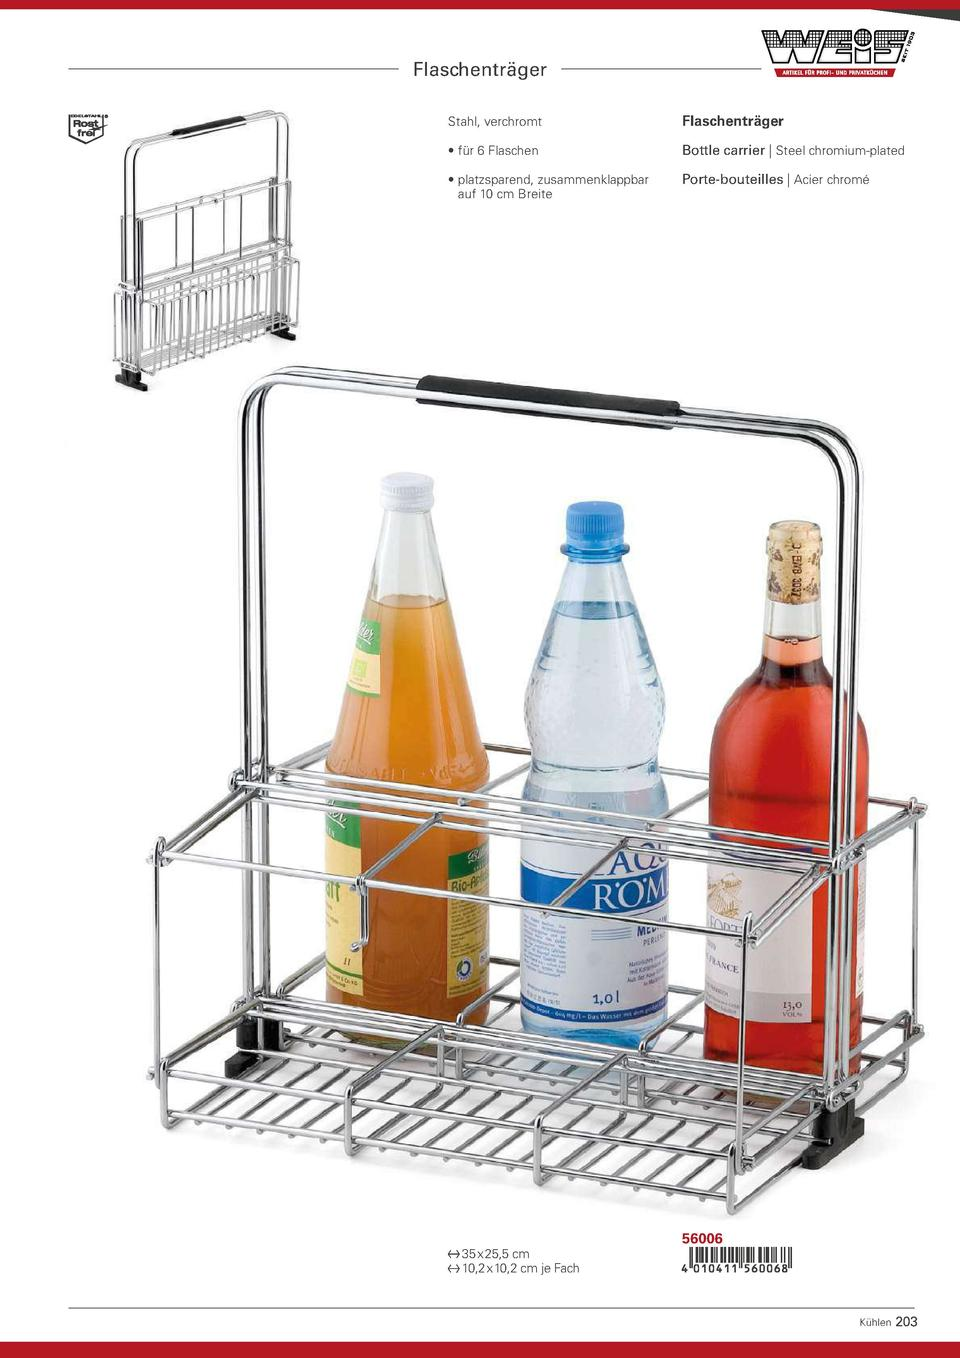 Flaschentr  ger Stahl, verchromt  Flaschentr  ger      f  r 6 Flaschen  Bottle carrier   Steel chromium-plated       platz...